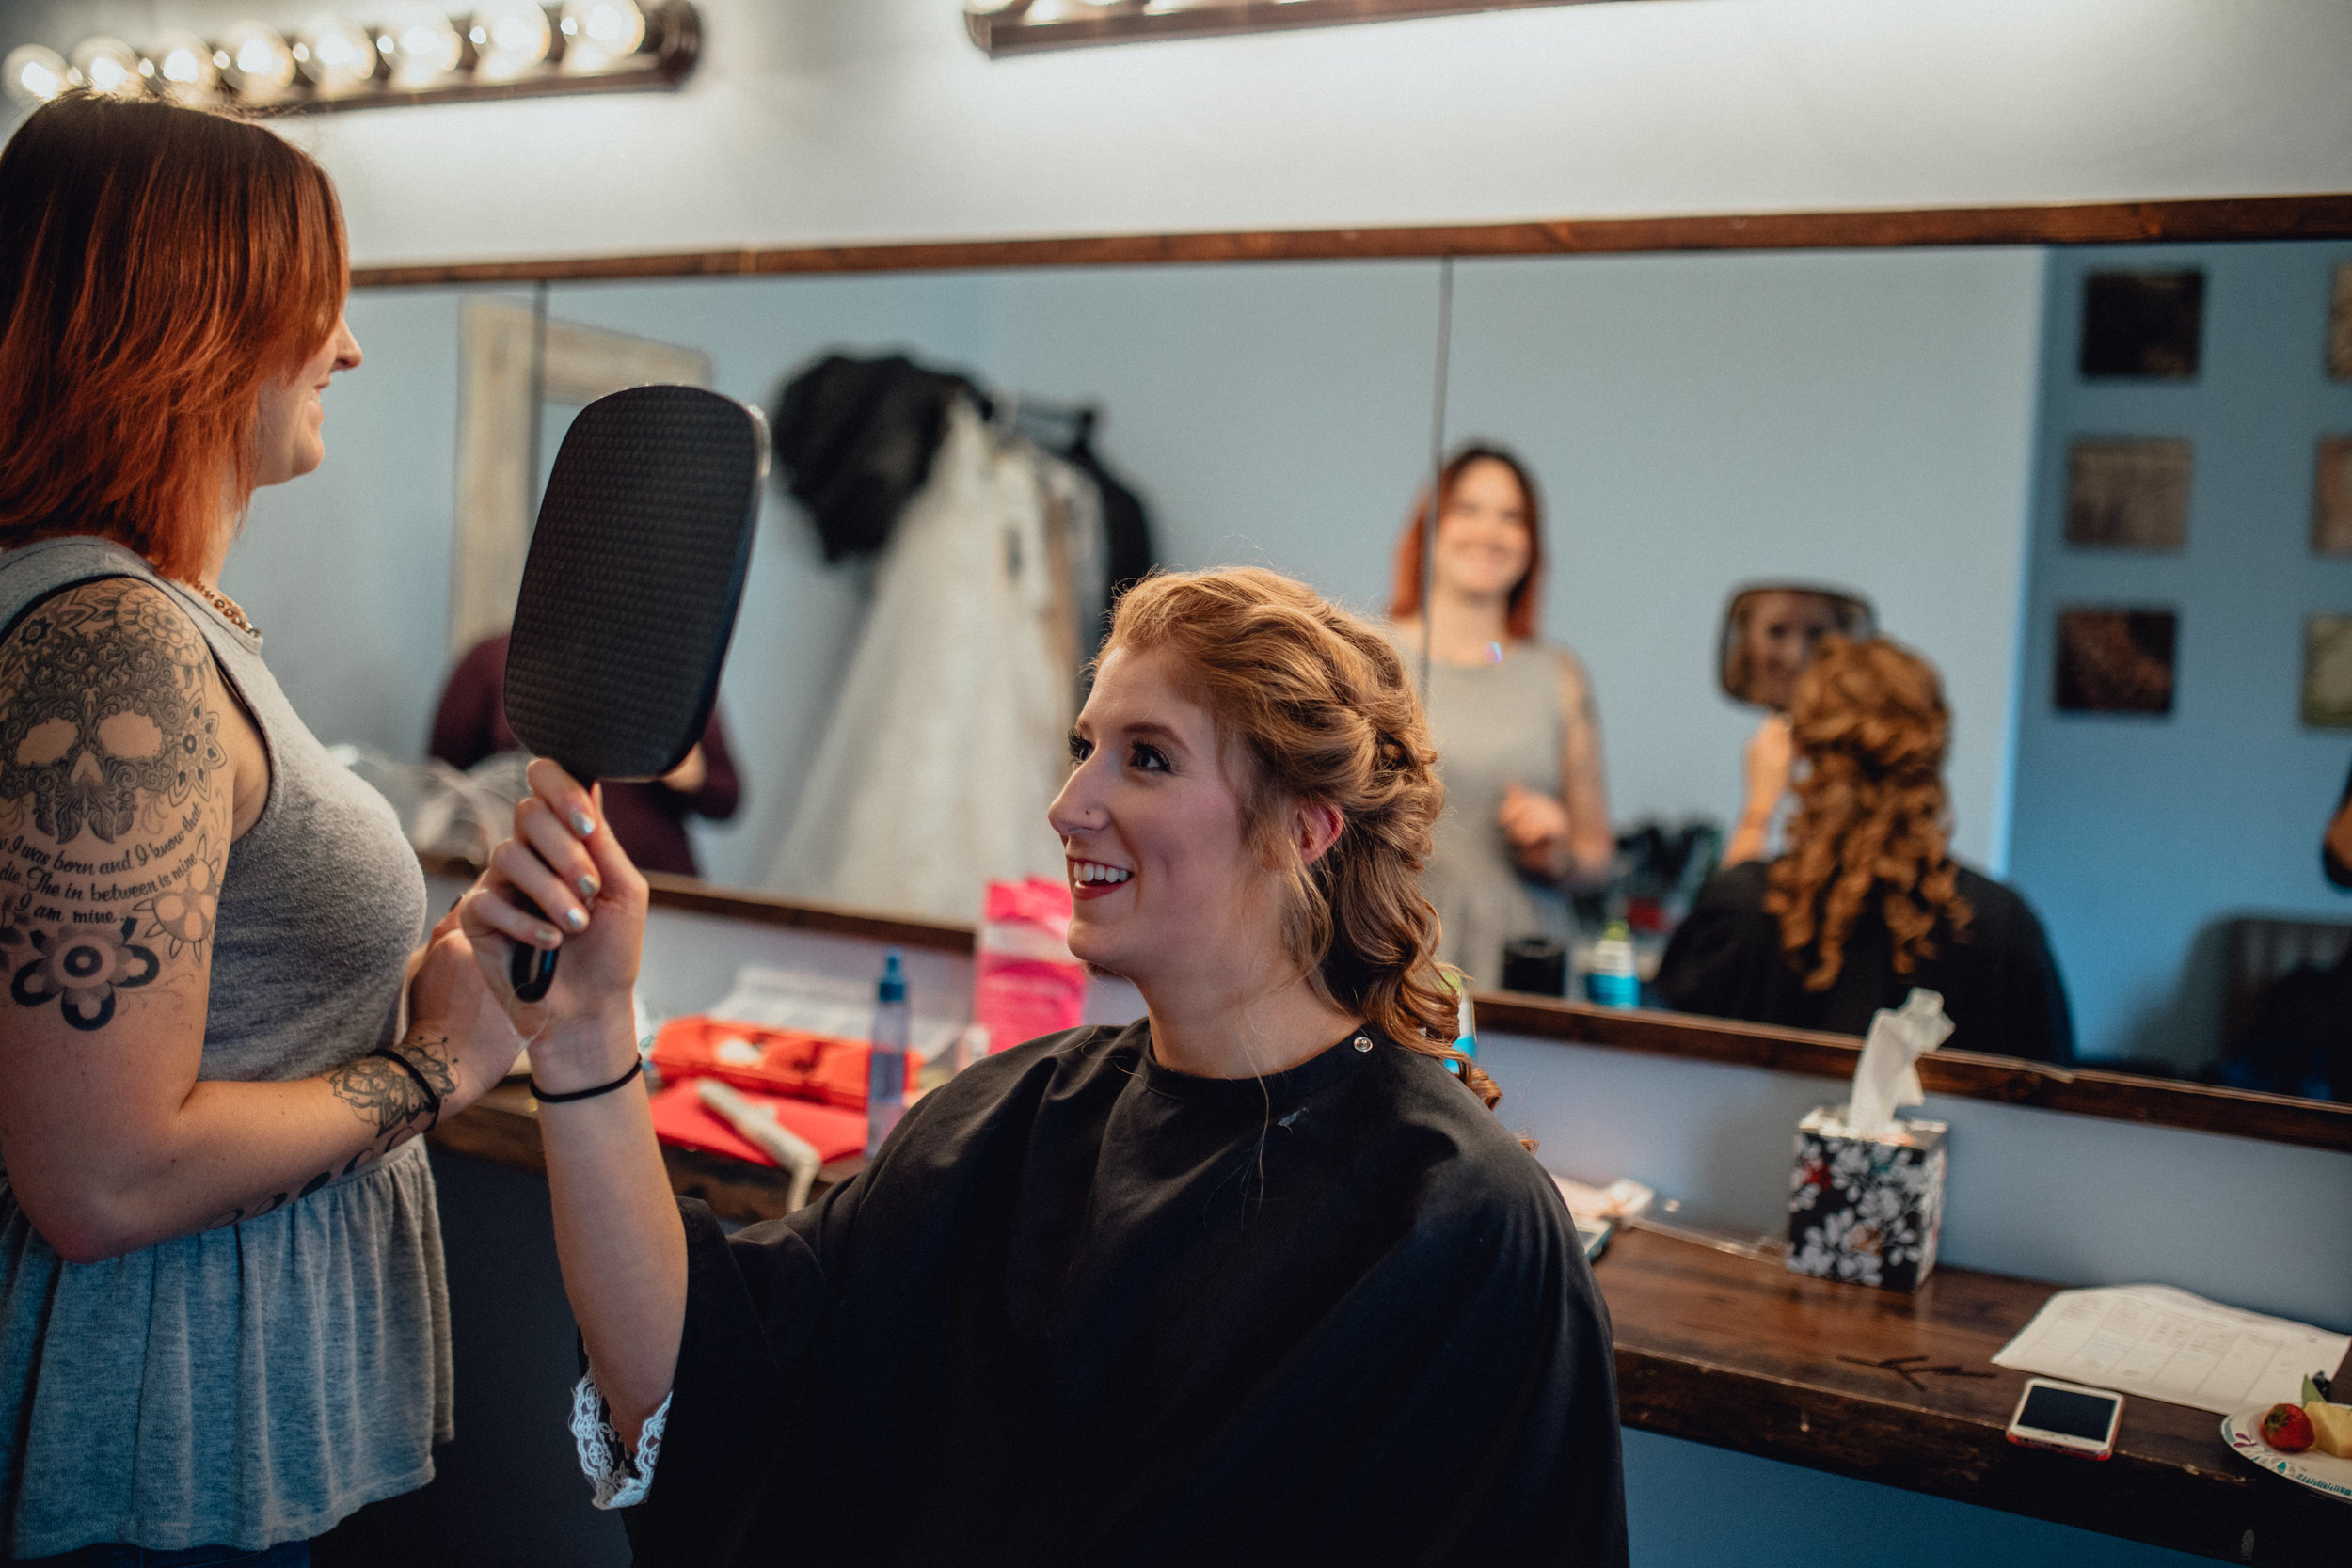 bride-looking-at-hair-in-mirror-bride-getting-hair-done-at-RUSTIC-MANOR-1848.jpg